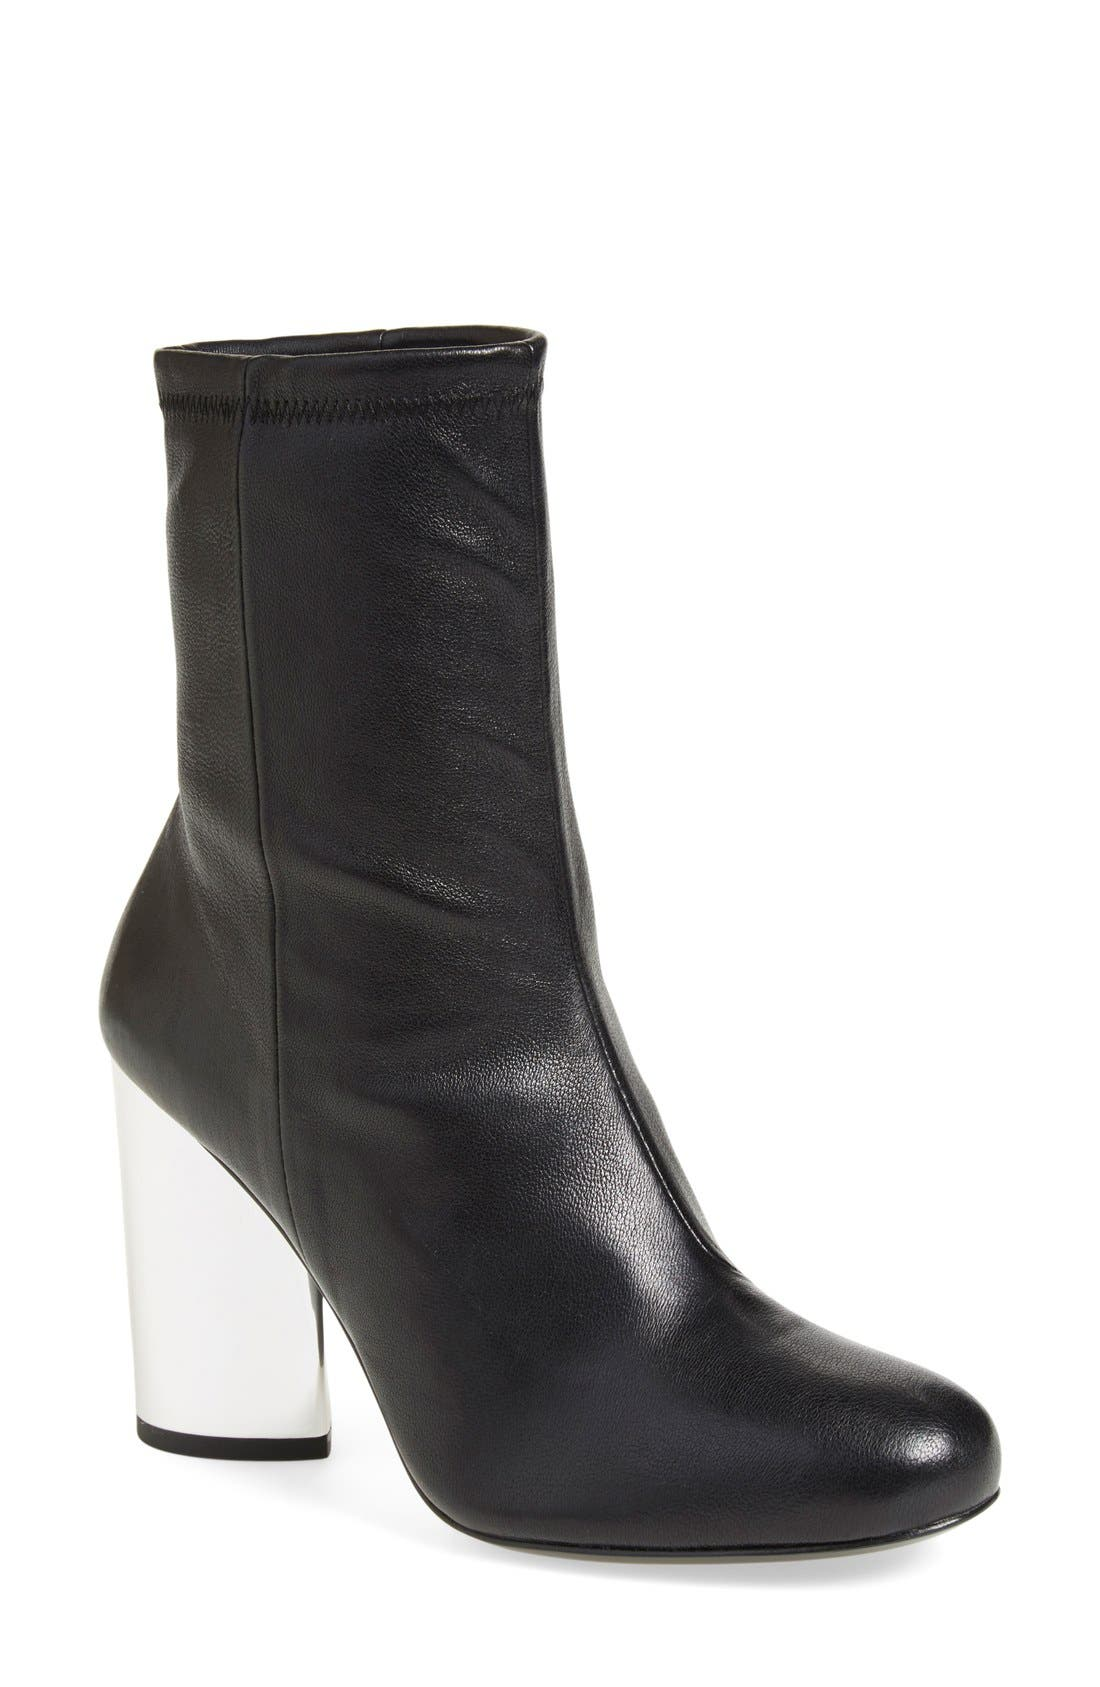 'Zloty' Round Toe Bootie,                             Main thumbnail 1, color,                             Black Leather